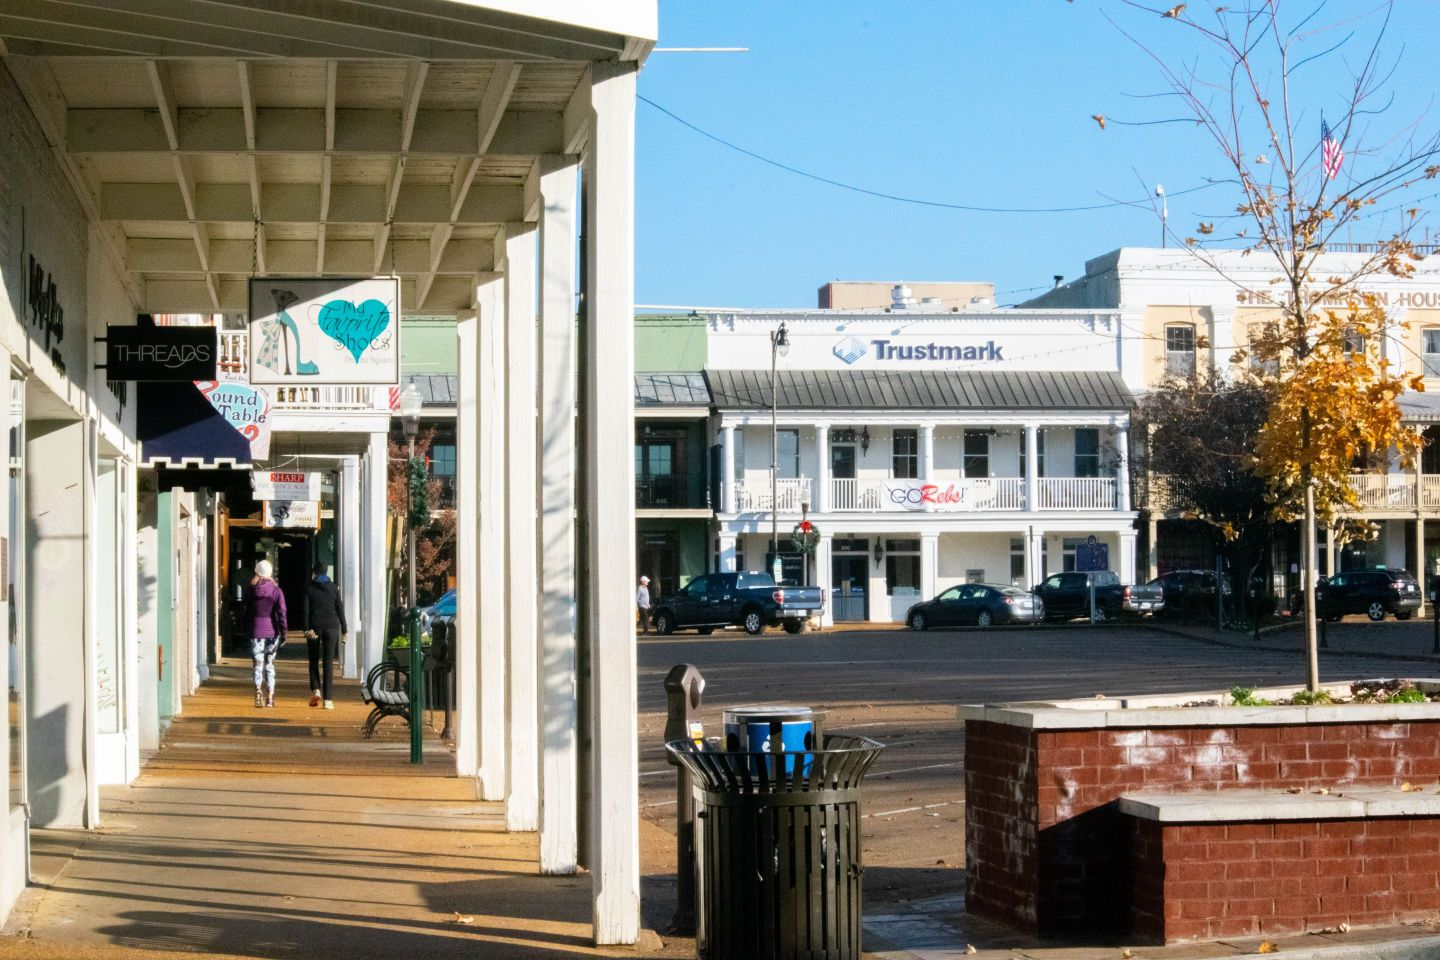 20181120-DSC_0233-1440x960 Southern Family Travels: Oxford, Mississippi - Food, Football and Fun